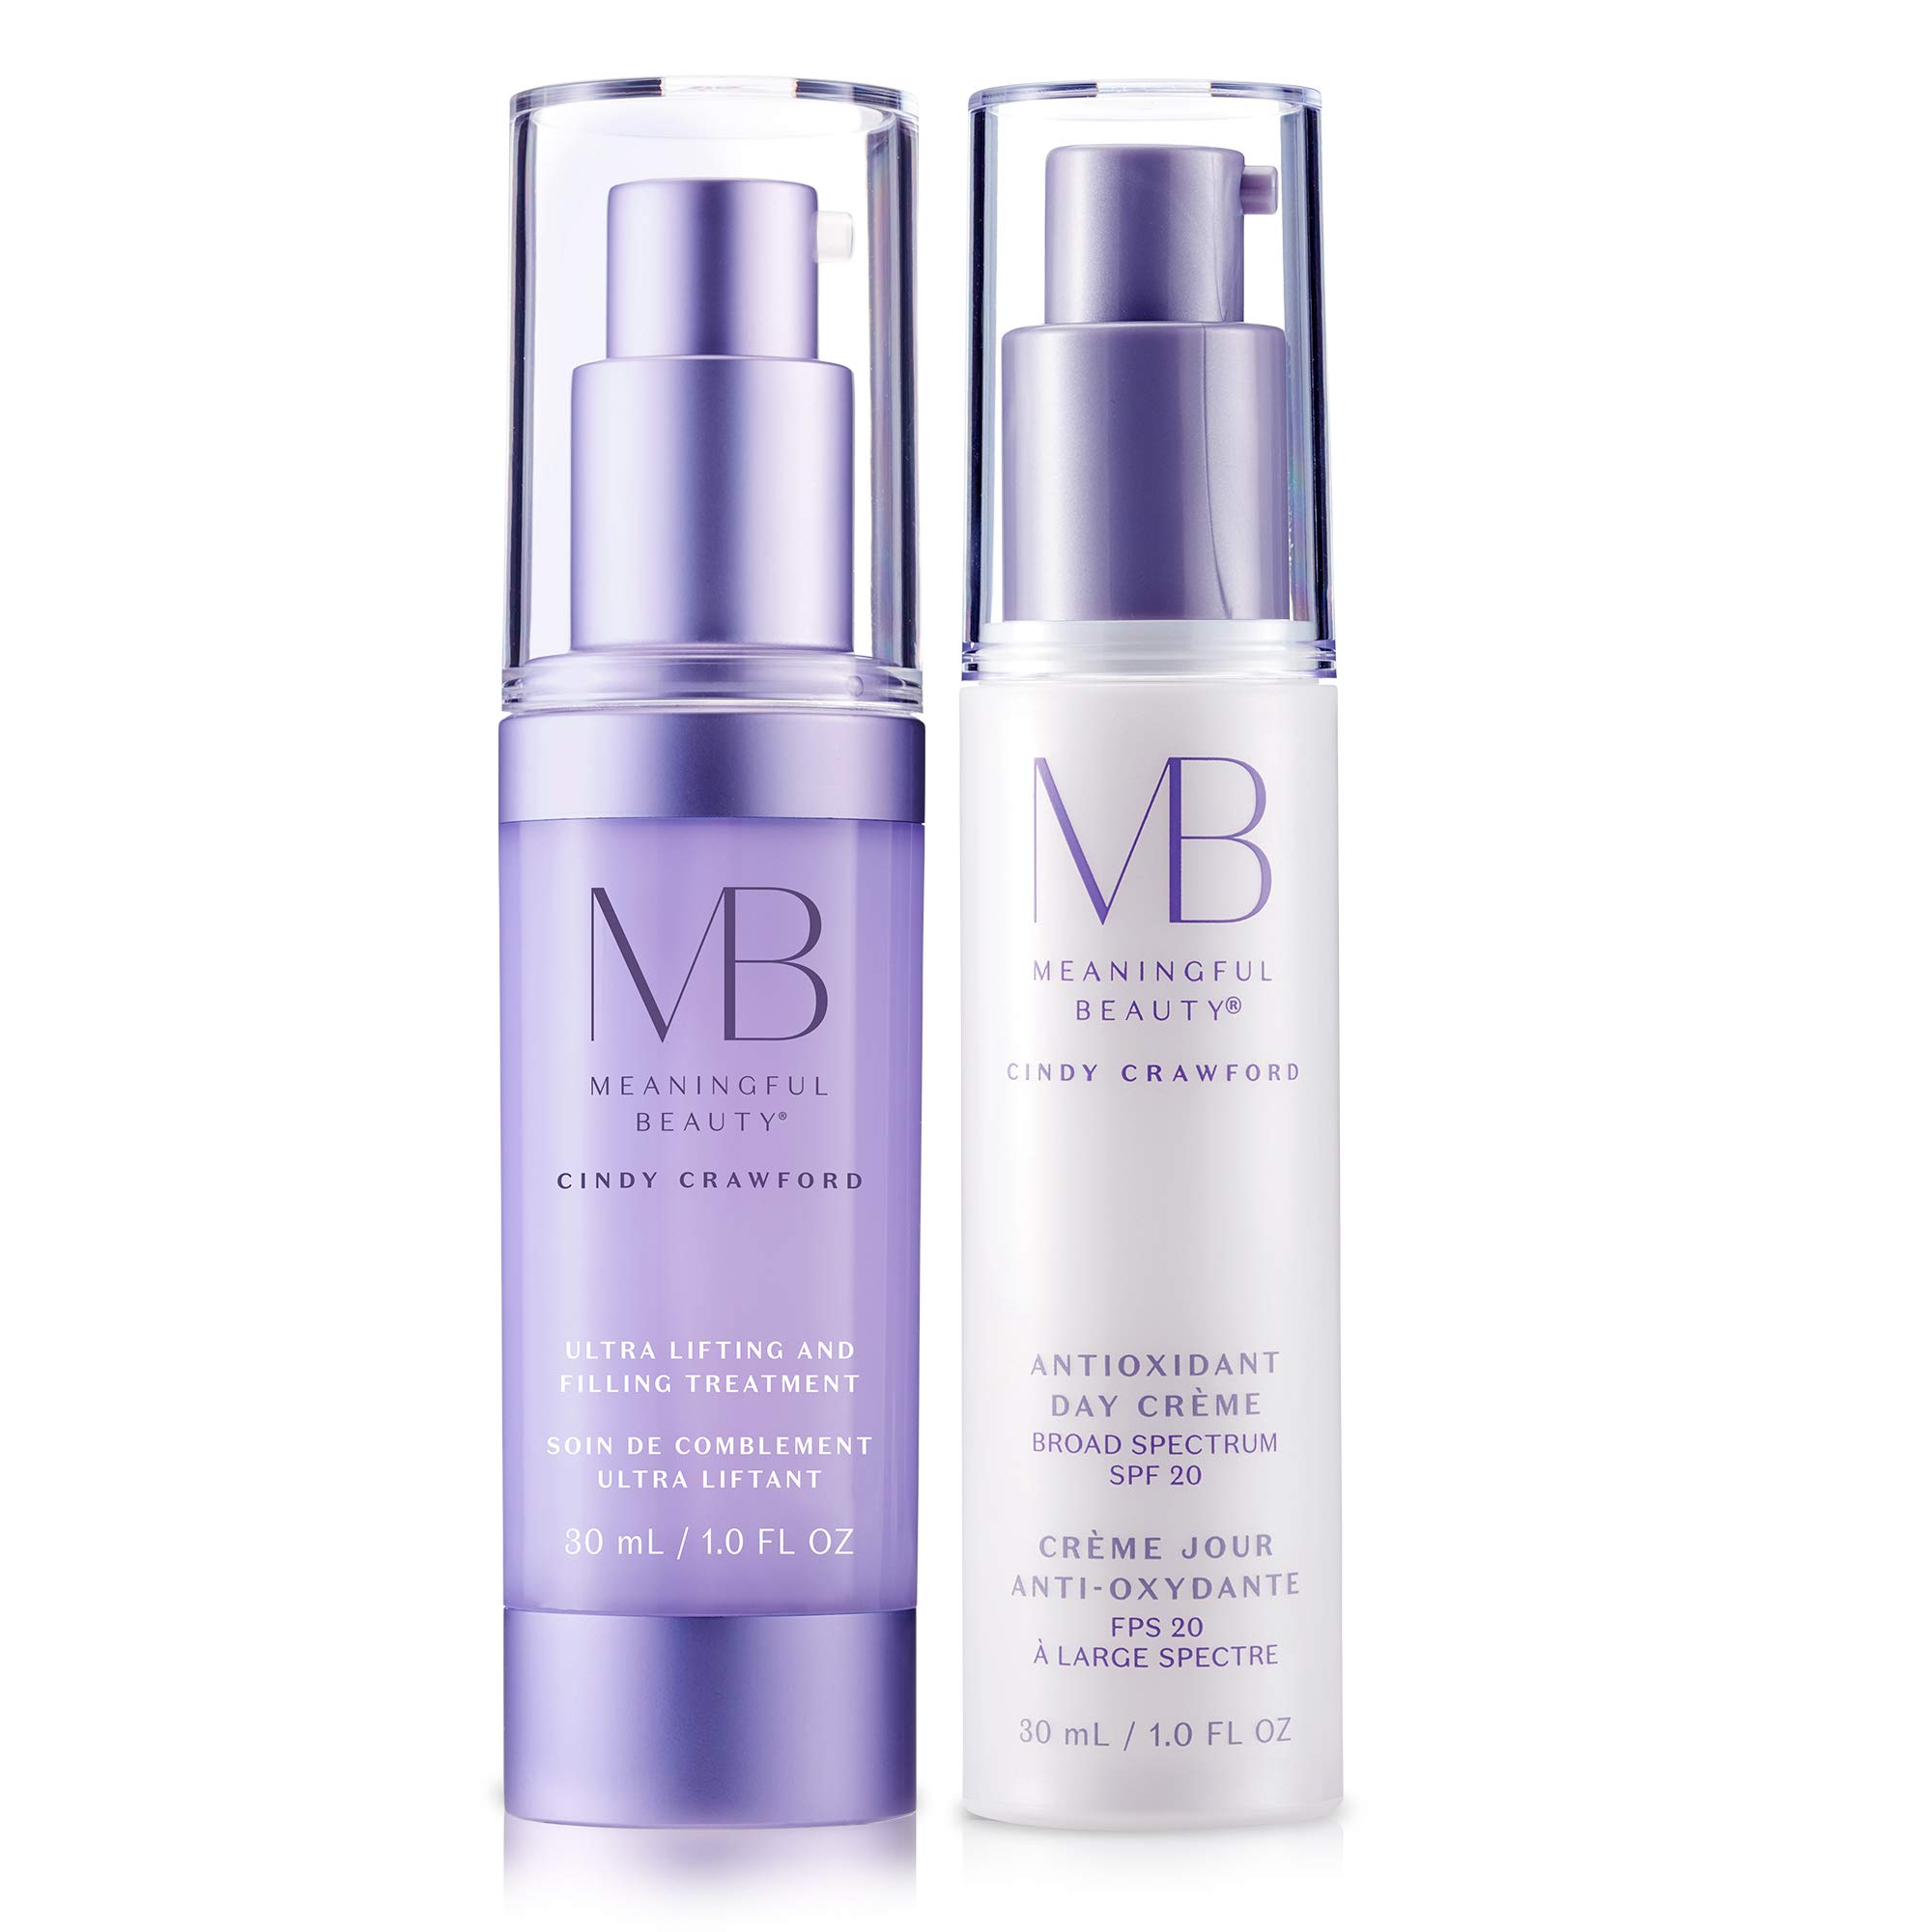 Meaningful Beauty - Renewing Day Protection System - for Firming and Radiance - 2 Piece Kit - MT.2060 by Meaningful Beauty